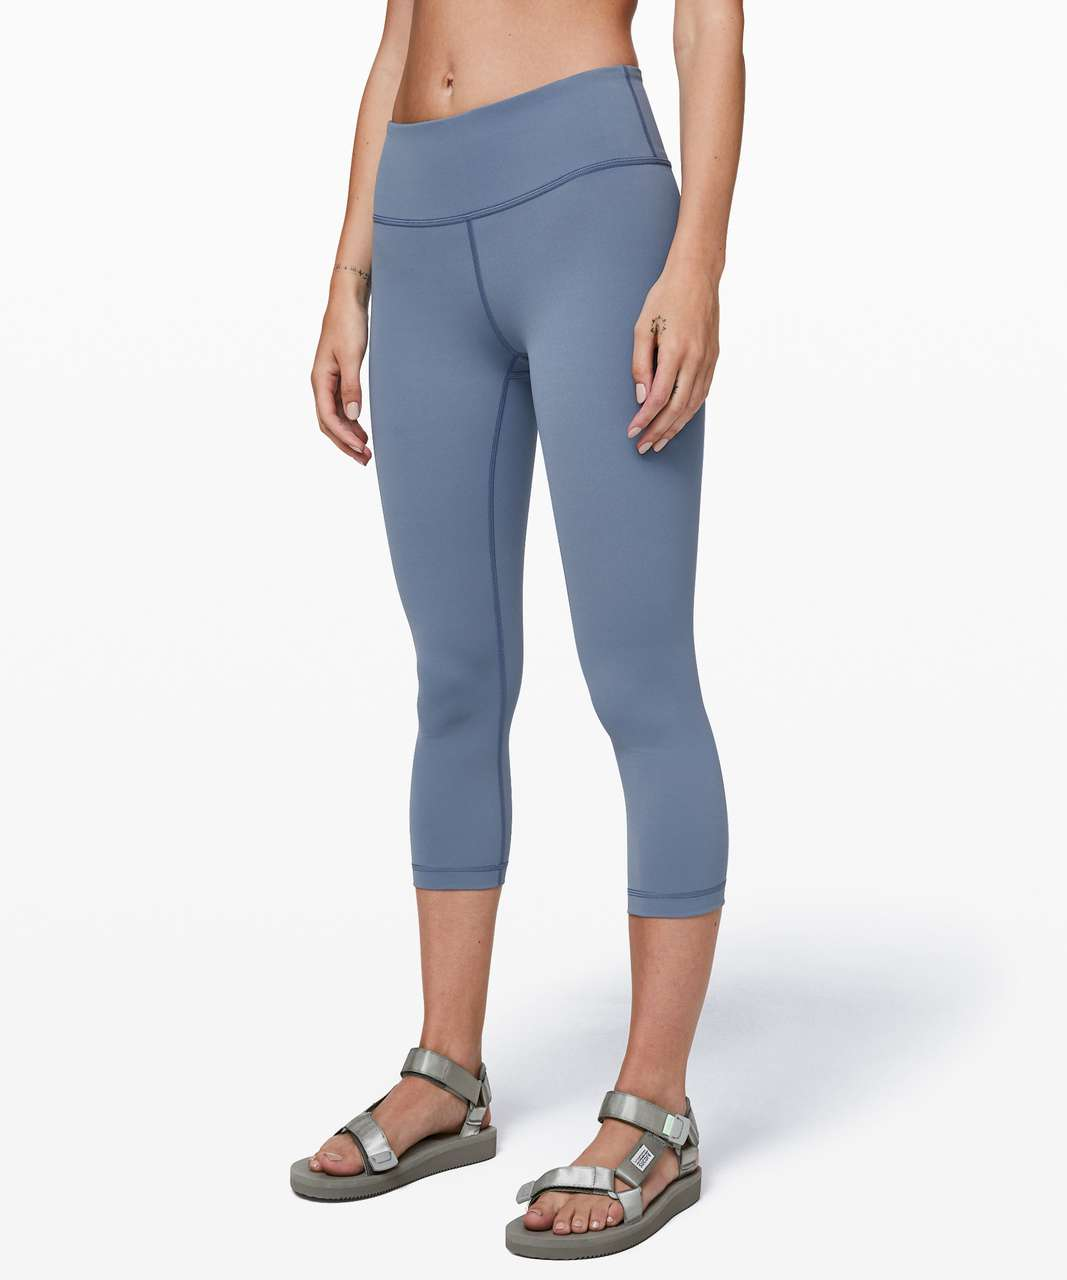 "Lululemon Wunder Under Crop *Mid-Rise Full-On Luxtreme 21"" - Oasis Blue"